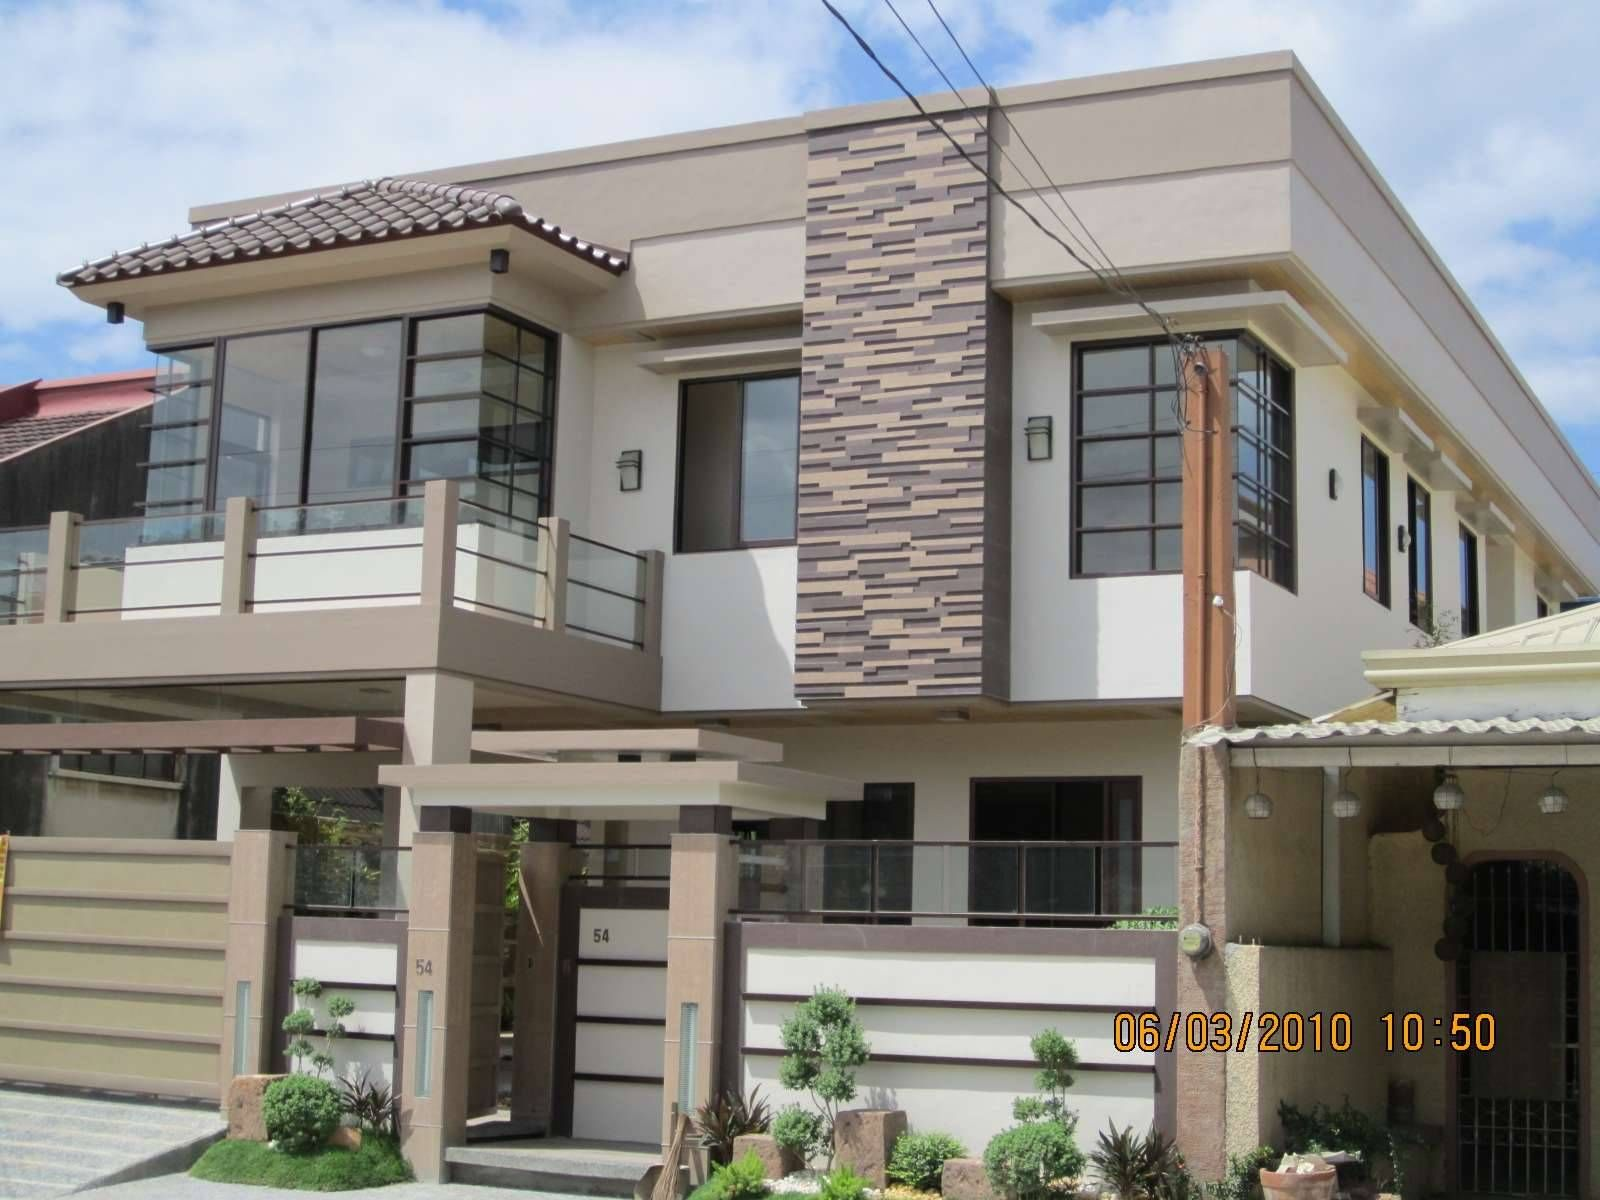 Philippines modern house exterior design dream house for House color design exterior philippines